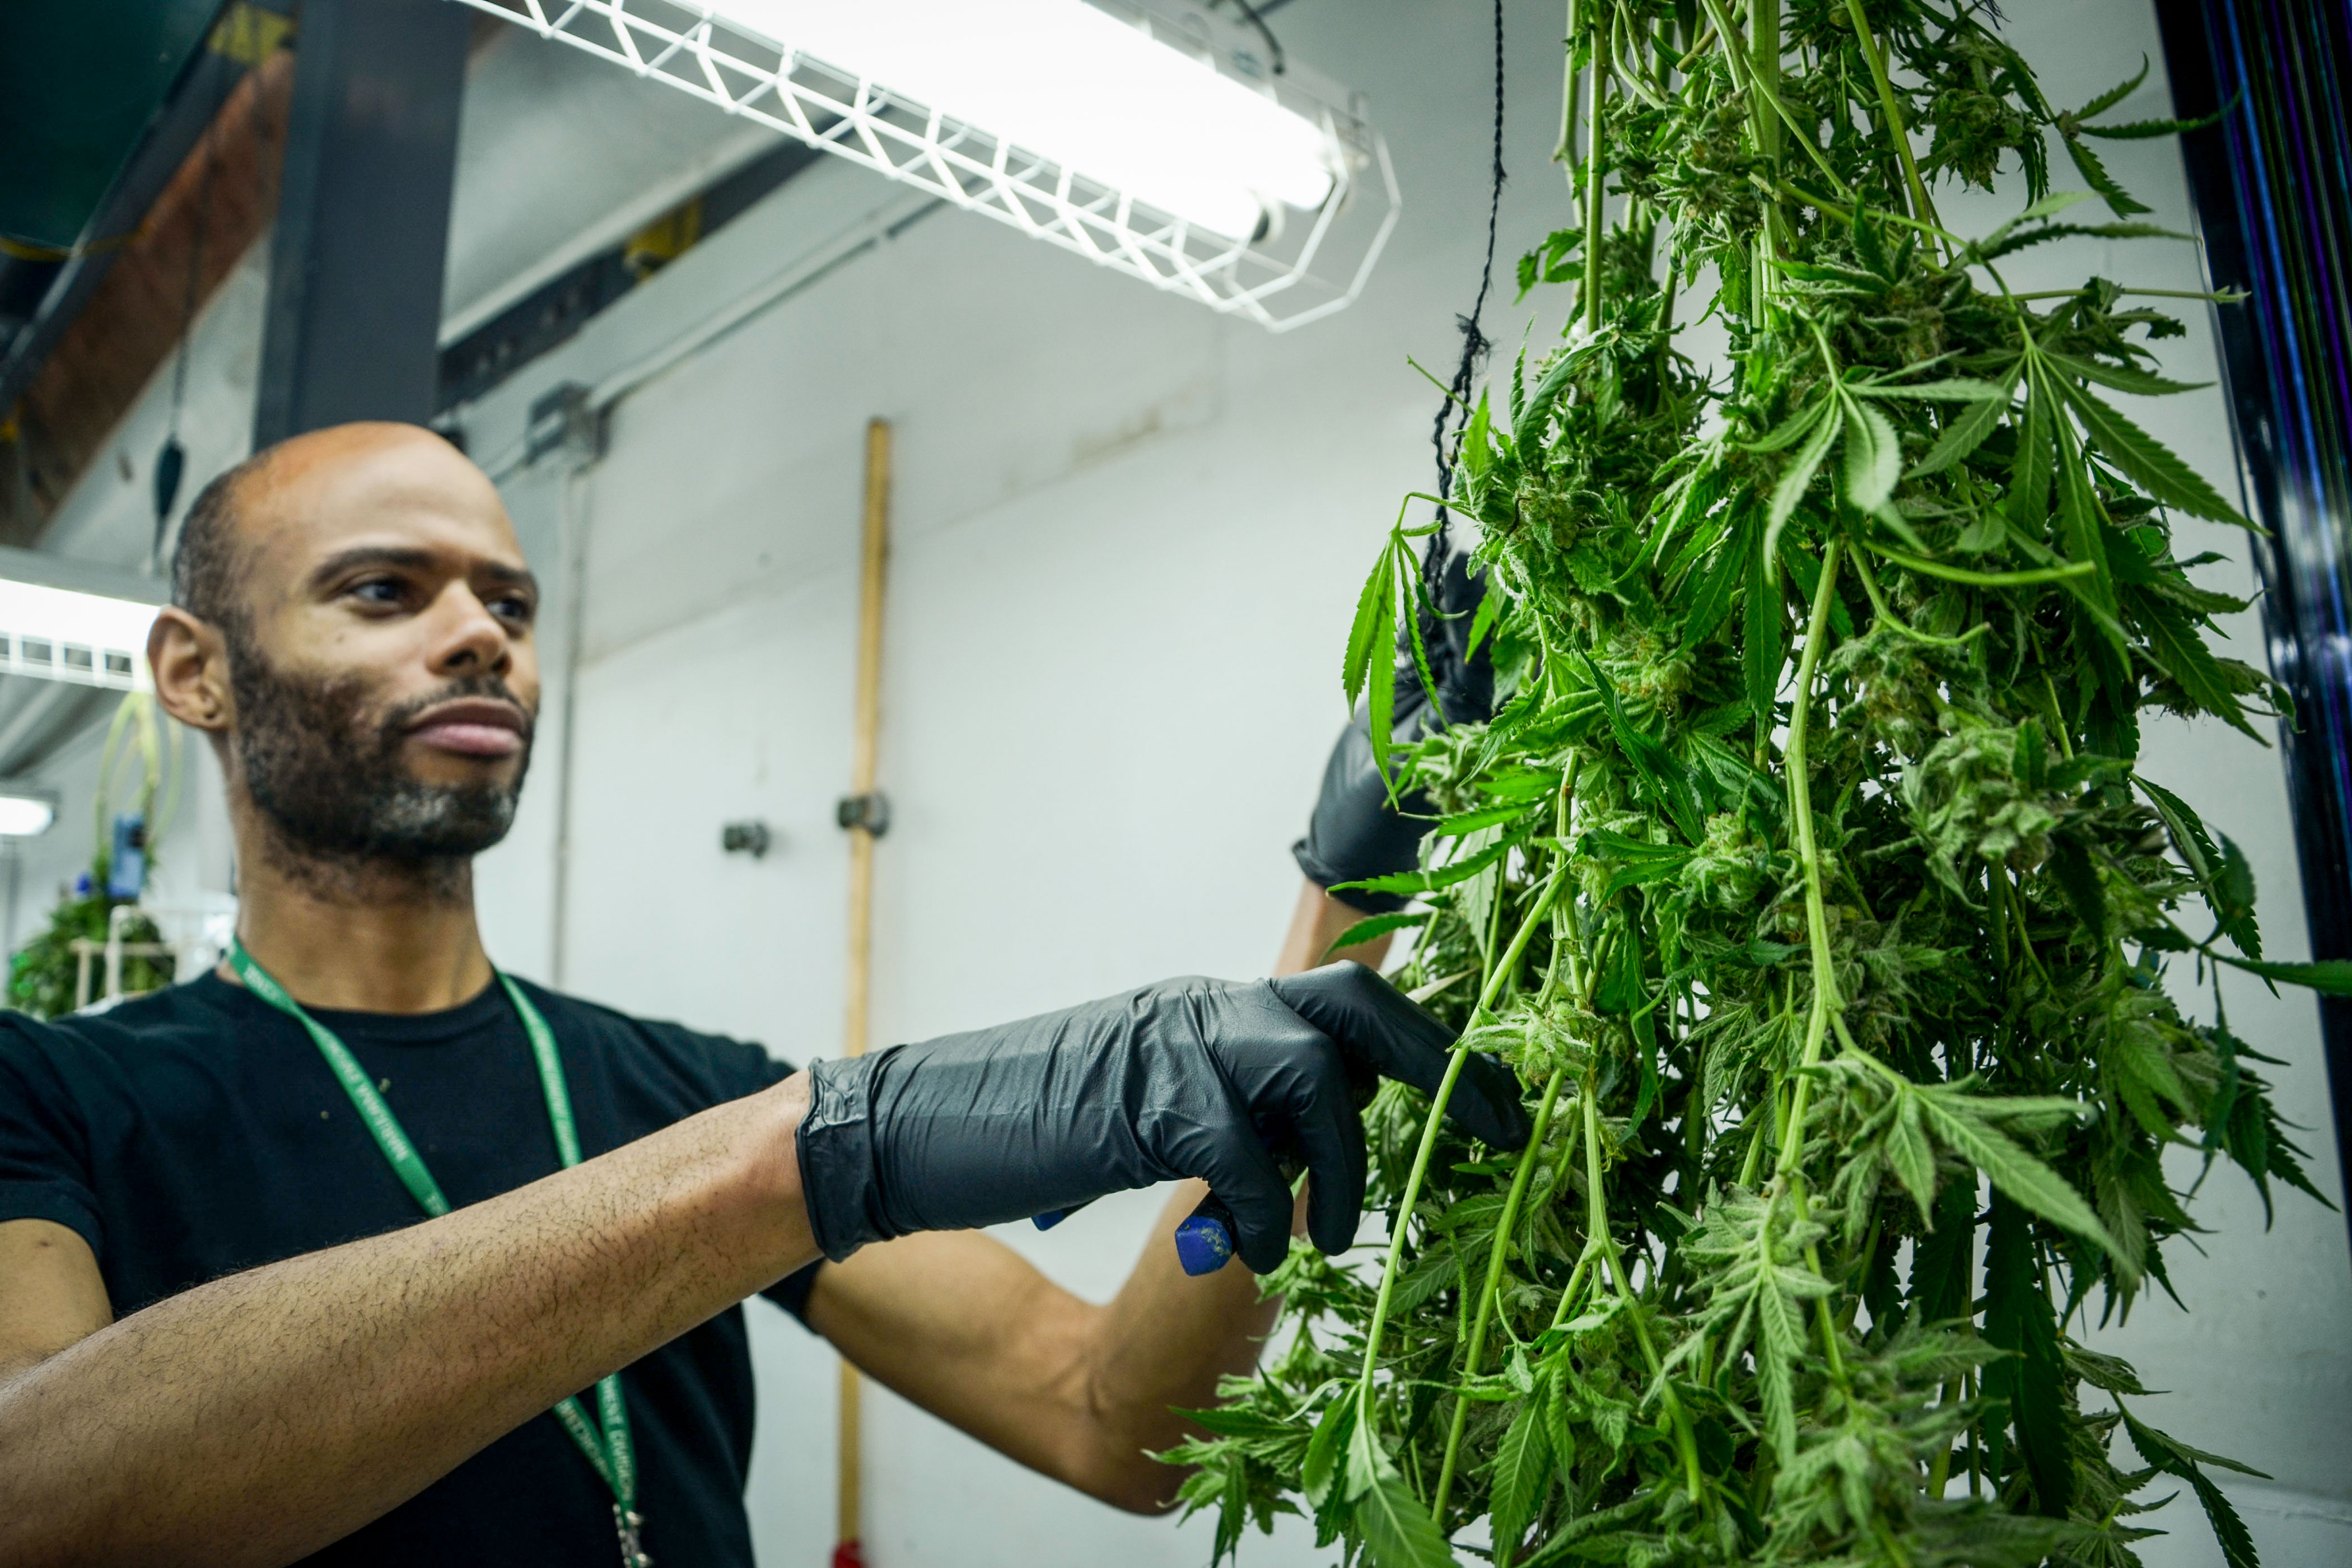 A LivWell employee trims marijuana plants at the company's grow facility in Denver, Colo.